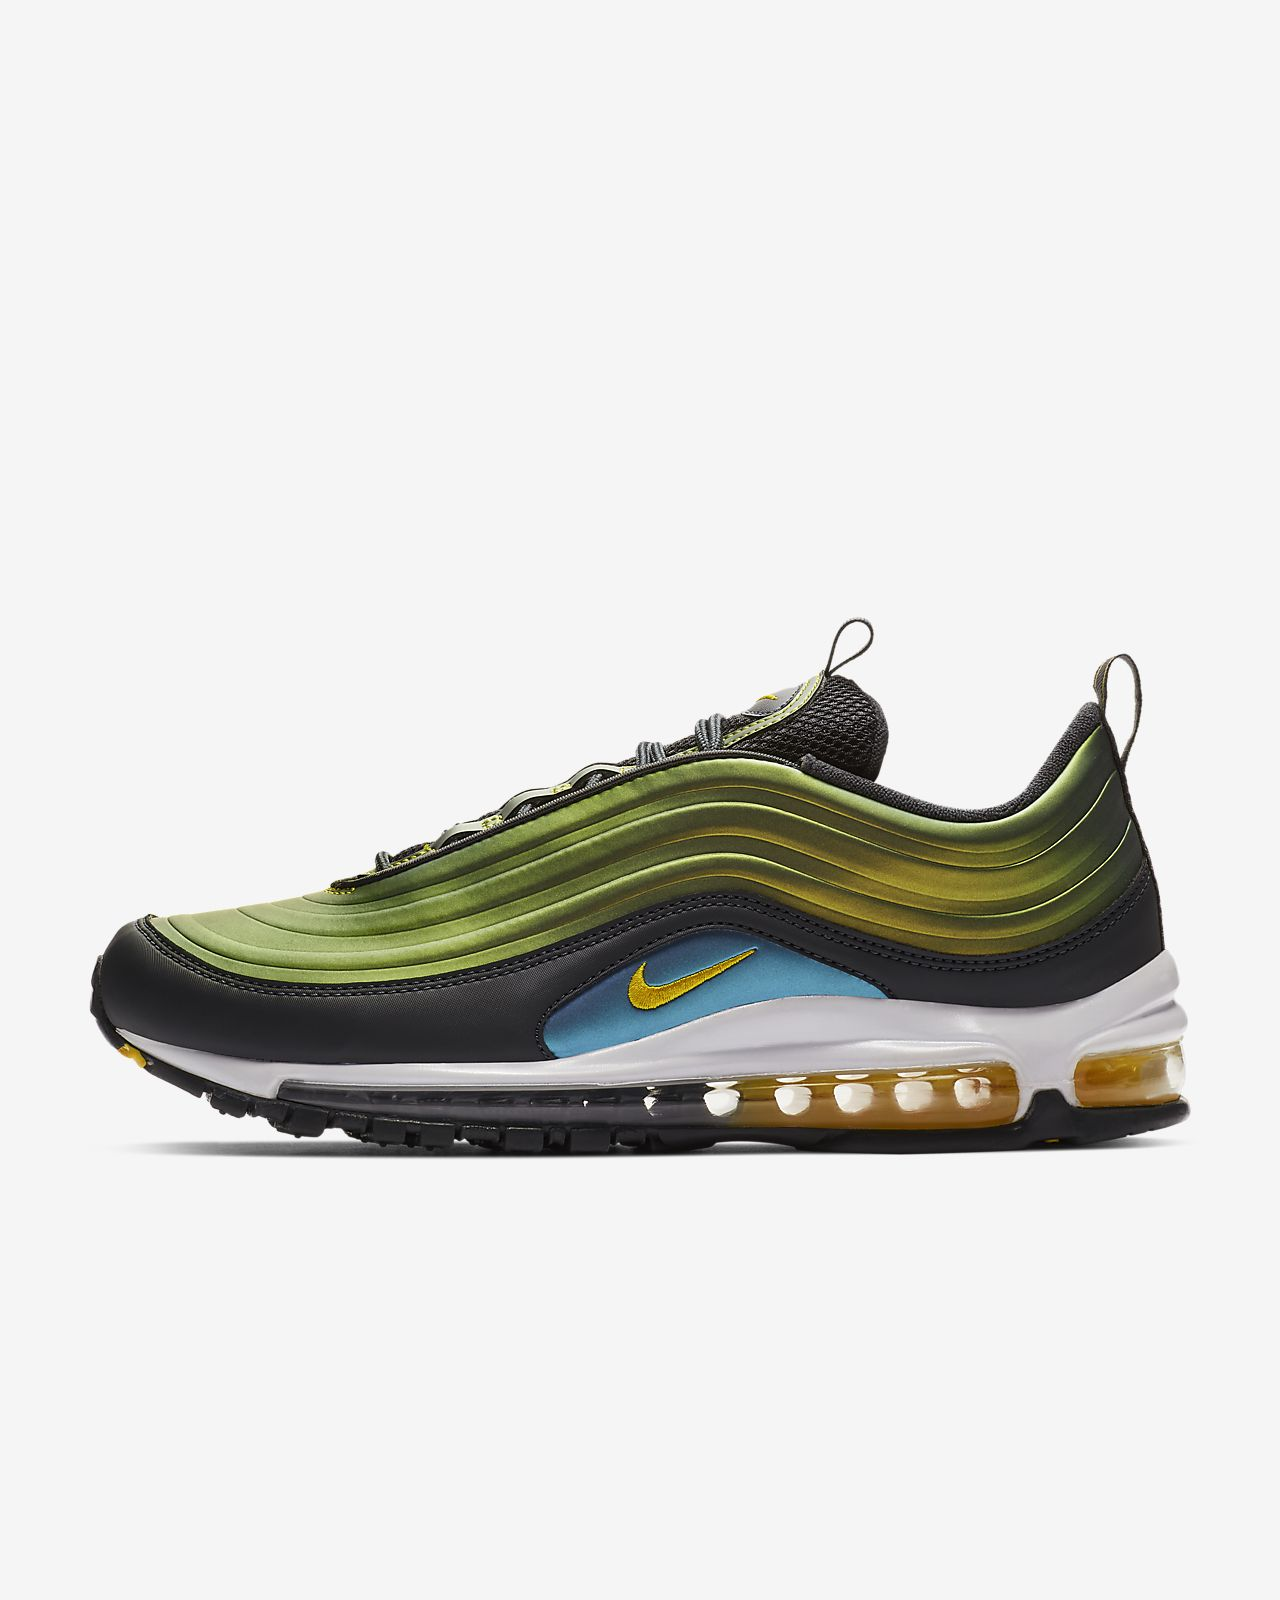 75472587cc Nike Air Max 97 LX Men's Shoe. Nike.com